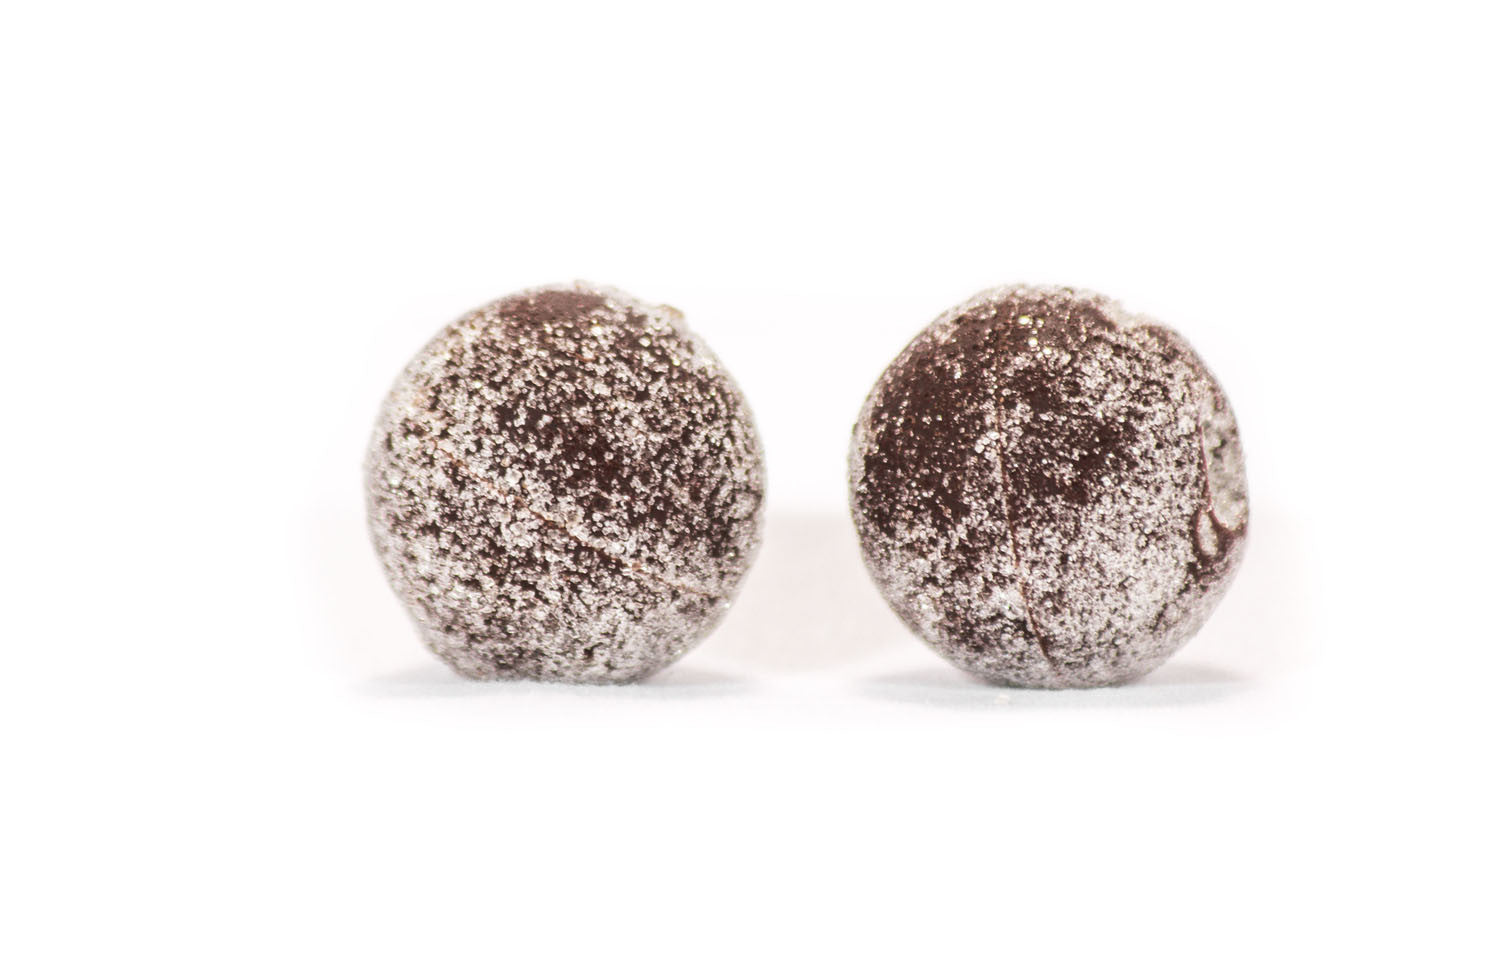 Chocolate Truffles (180 mg)